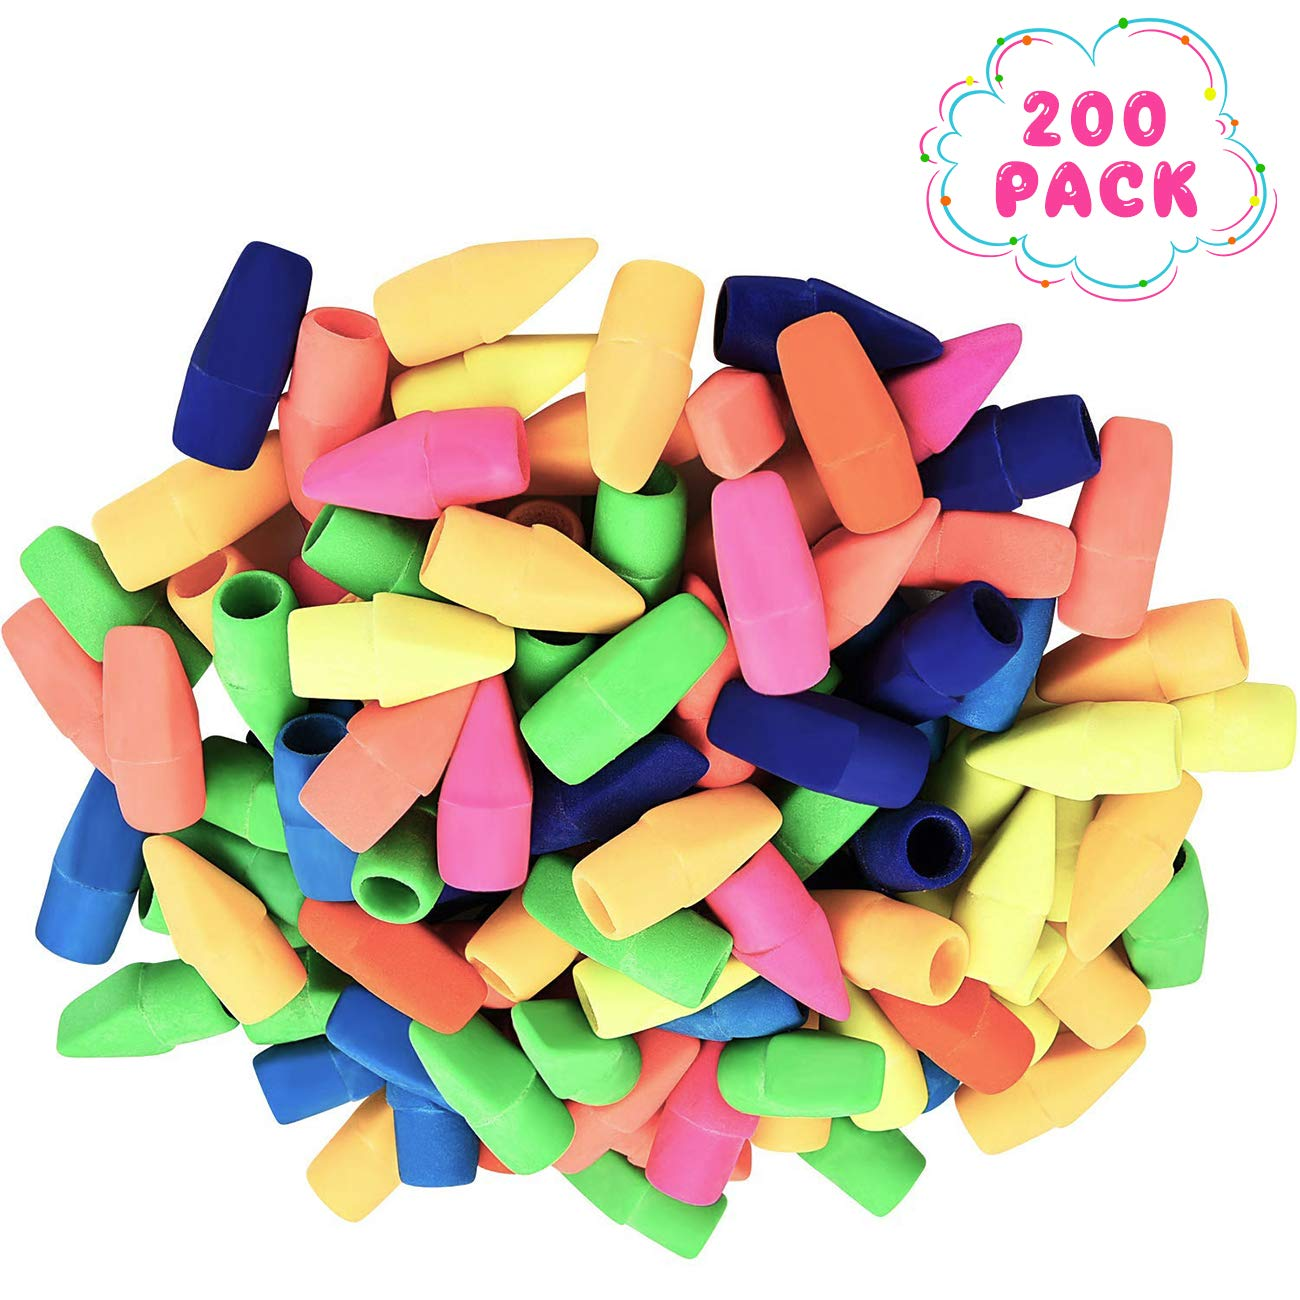 200 Pack Pencil Erasers, Pencil Top Eraser Caps Chisel Shape Pencil Eraser Toppers Assorted Colors, School Erasers for Kids, School Supplies for Teachers